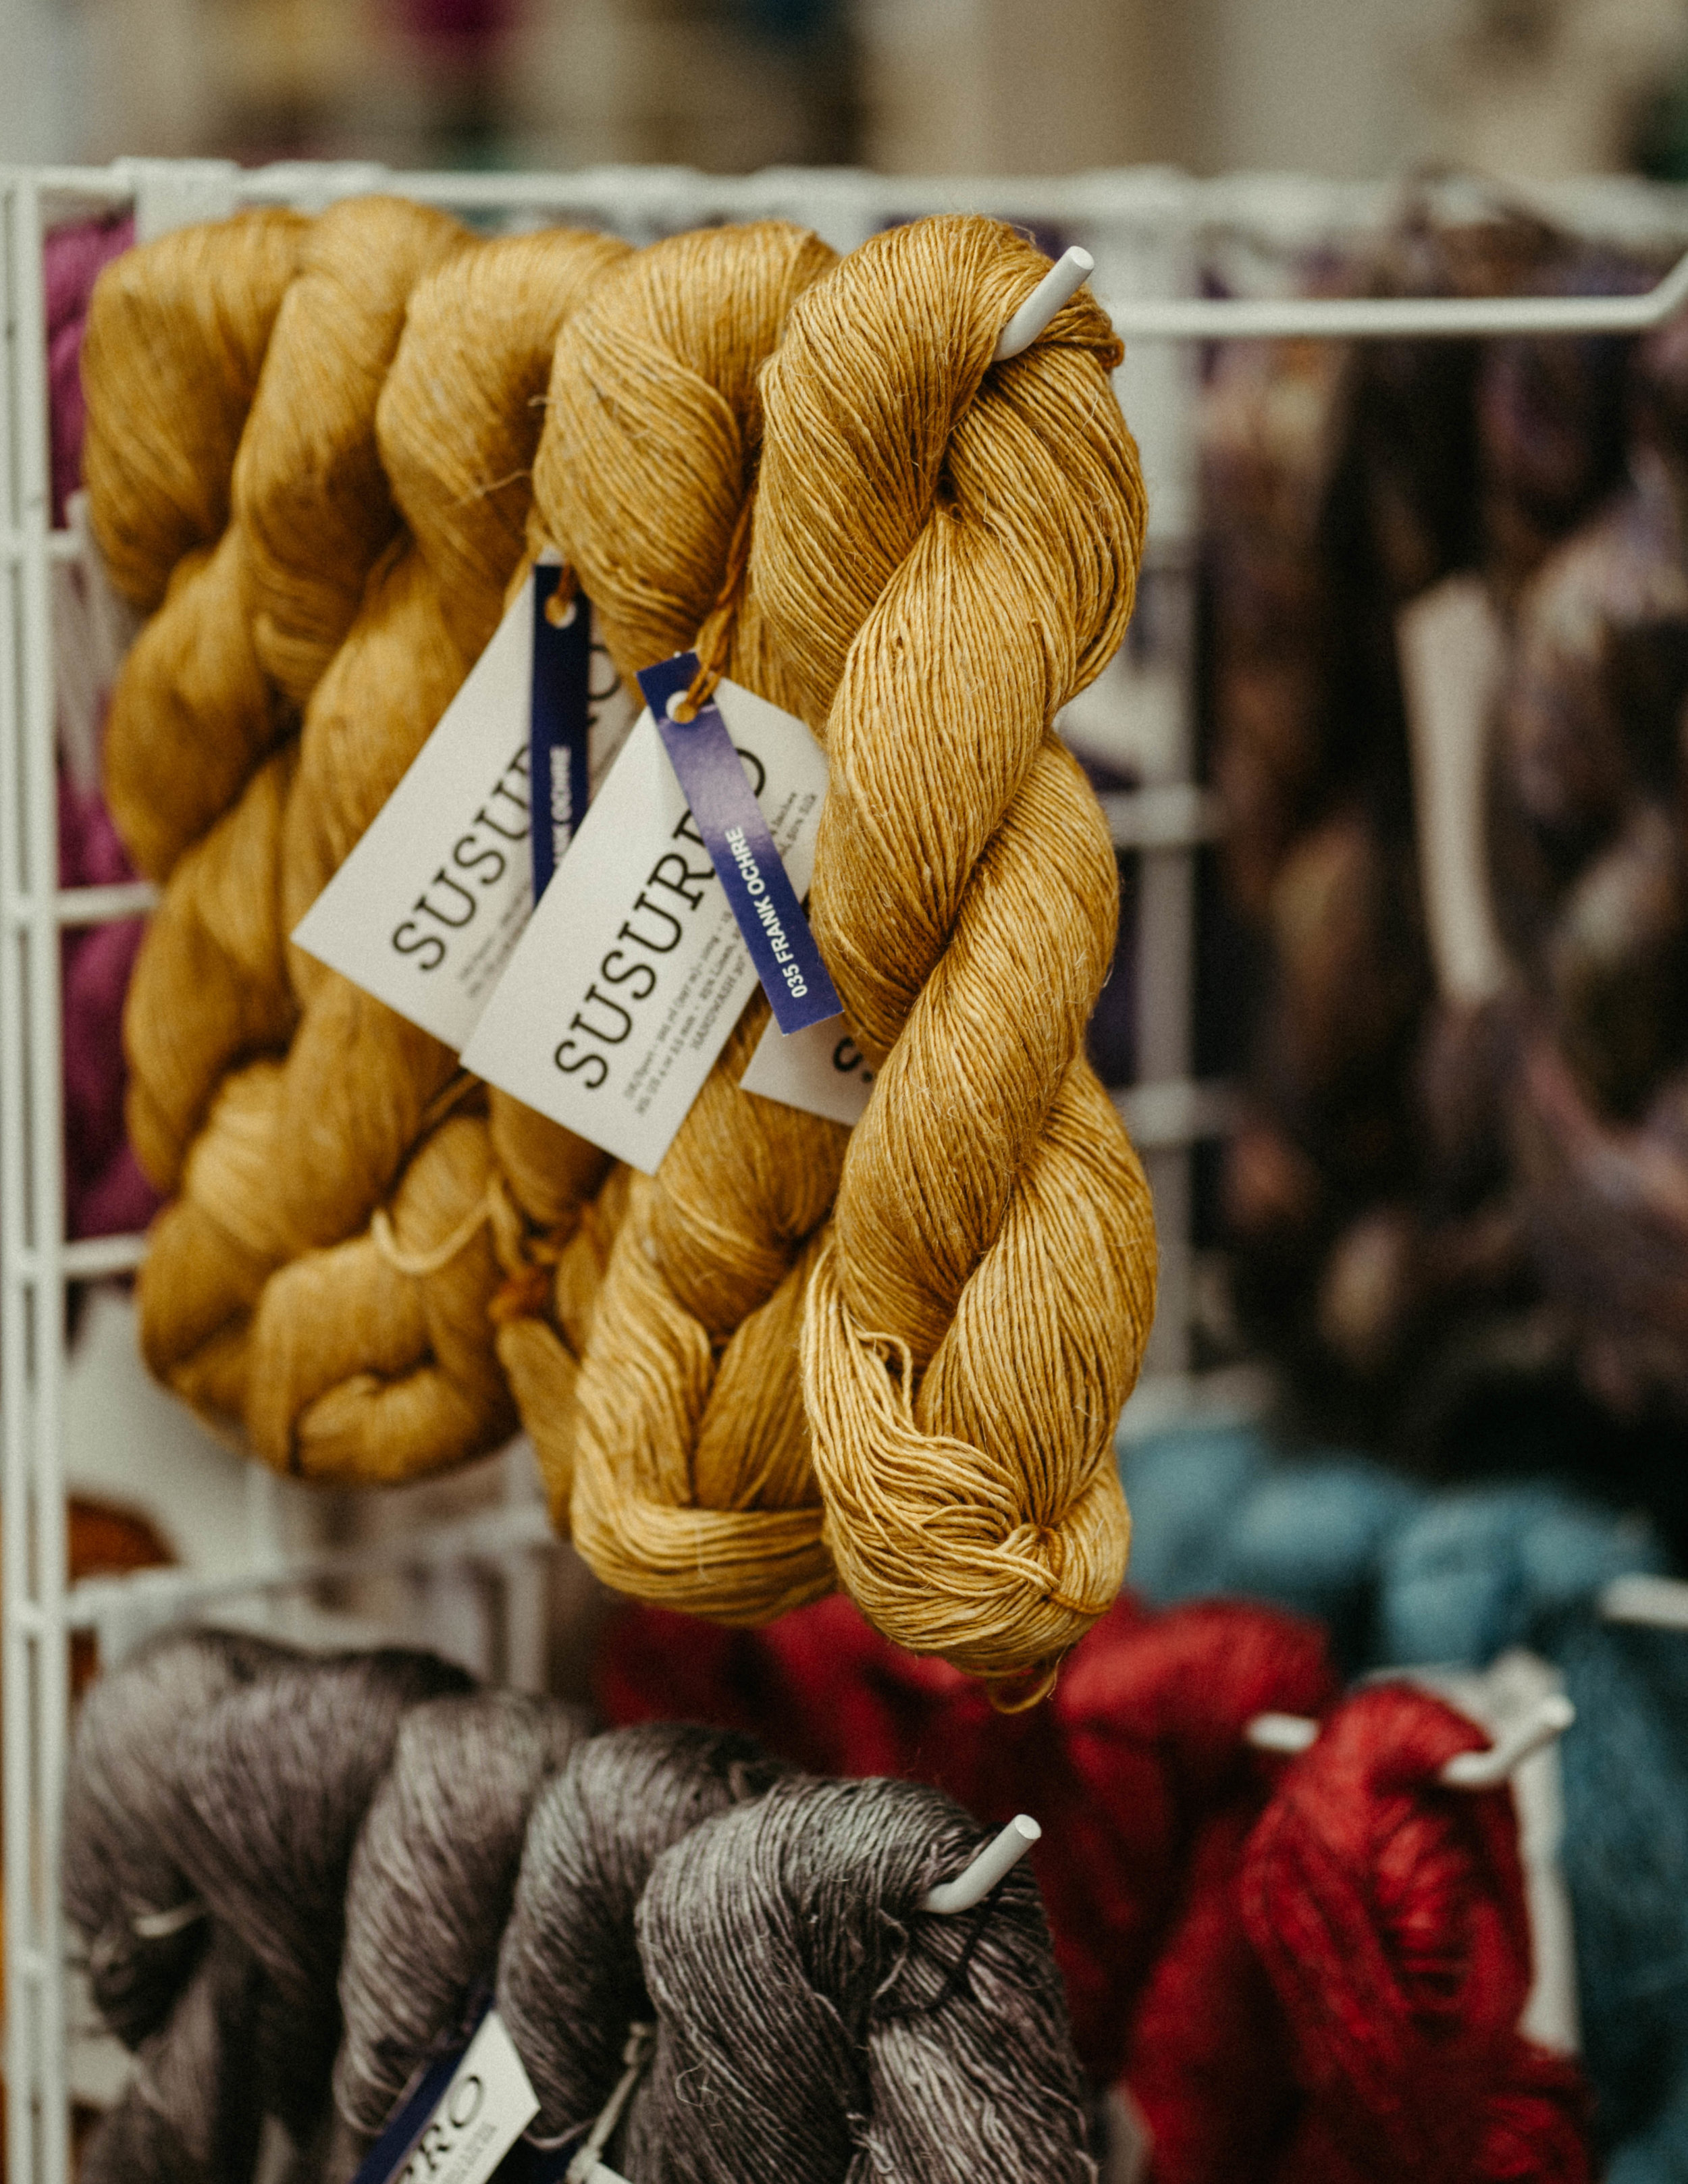 Ewe and Me a yarn boutique-37.jpg